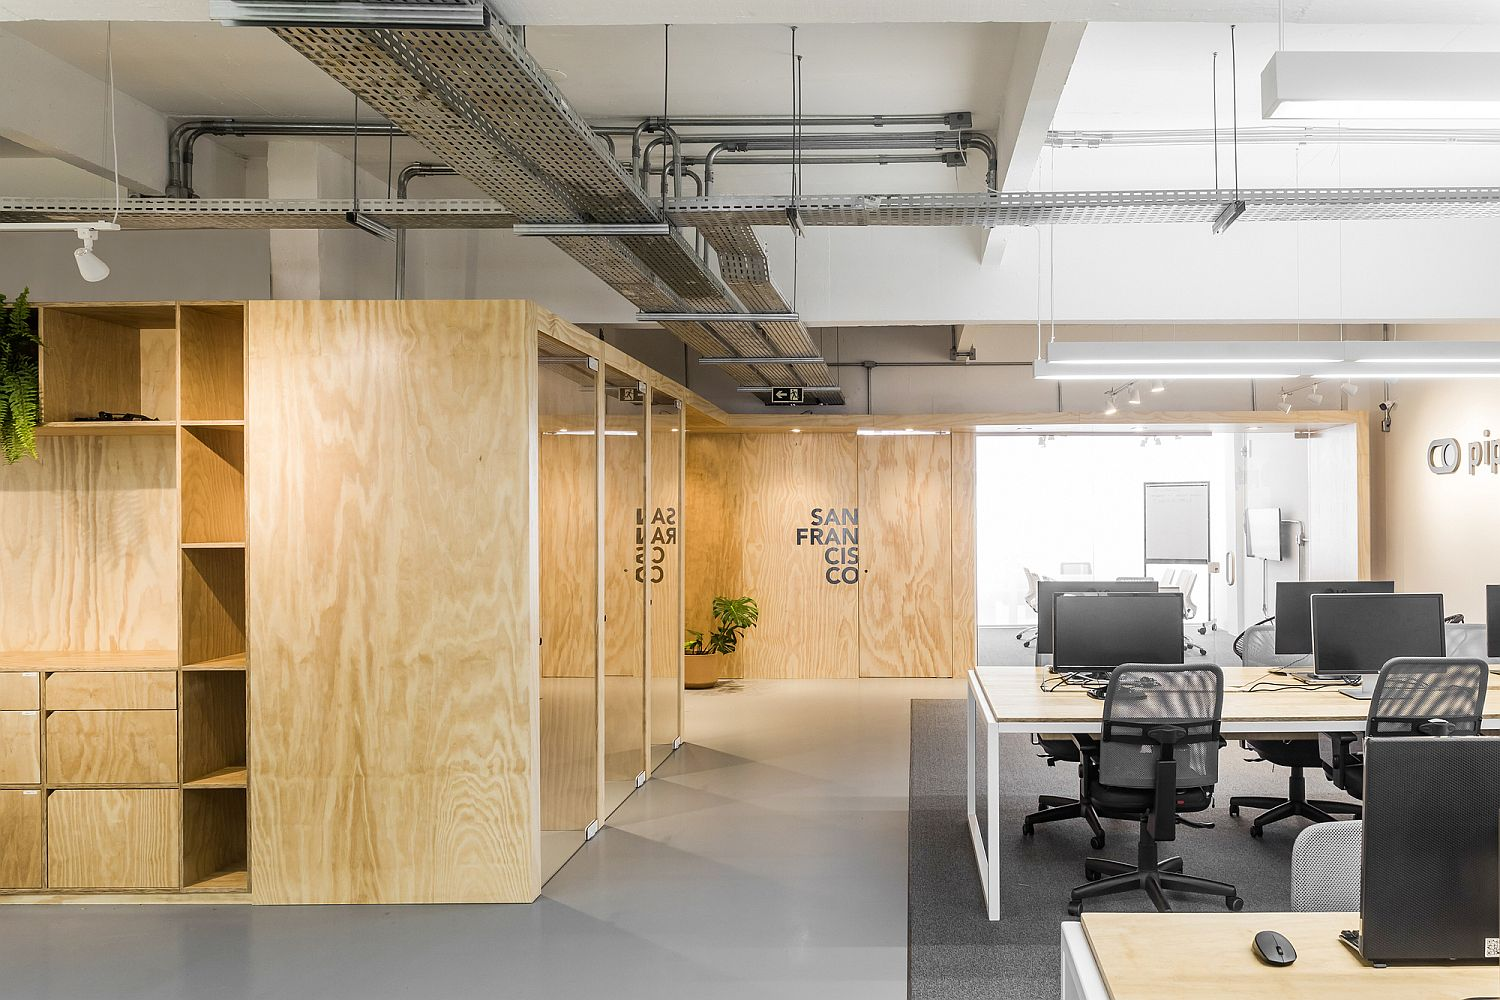 Raw concrete wood, and industrial elements give this office a modern rustic look